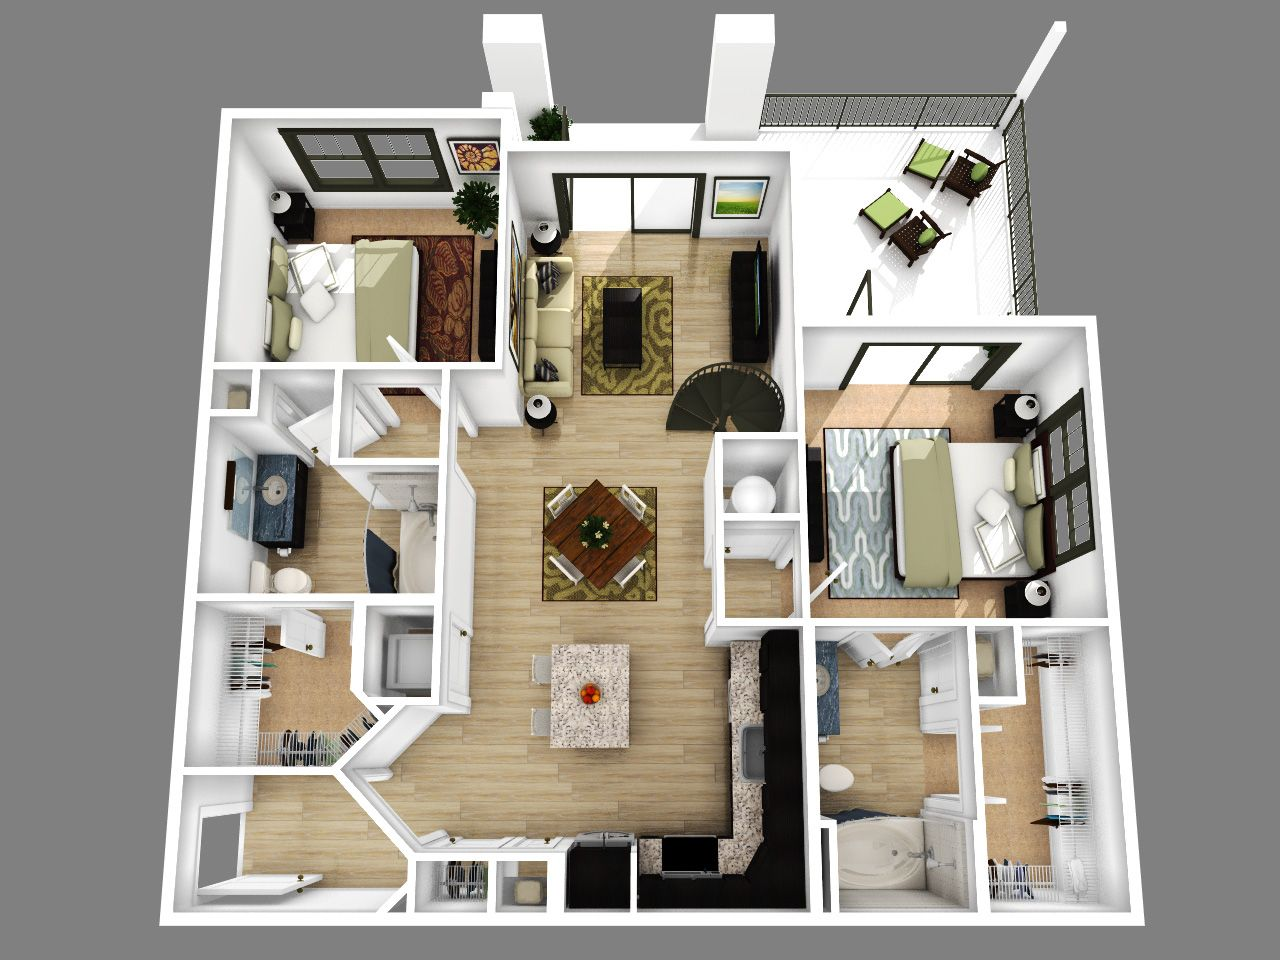 2 Bedroom Apartment Floor Plans 3D Amazing Decoration 416118